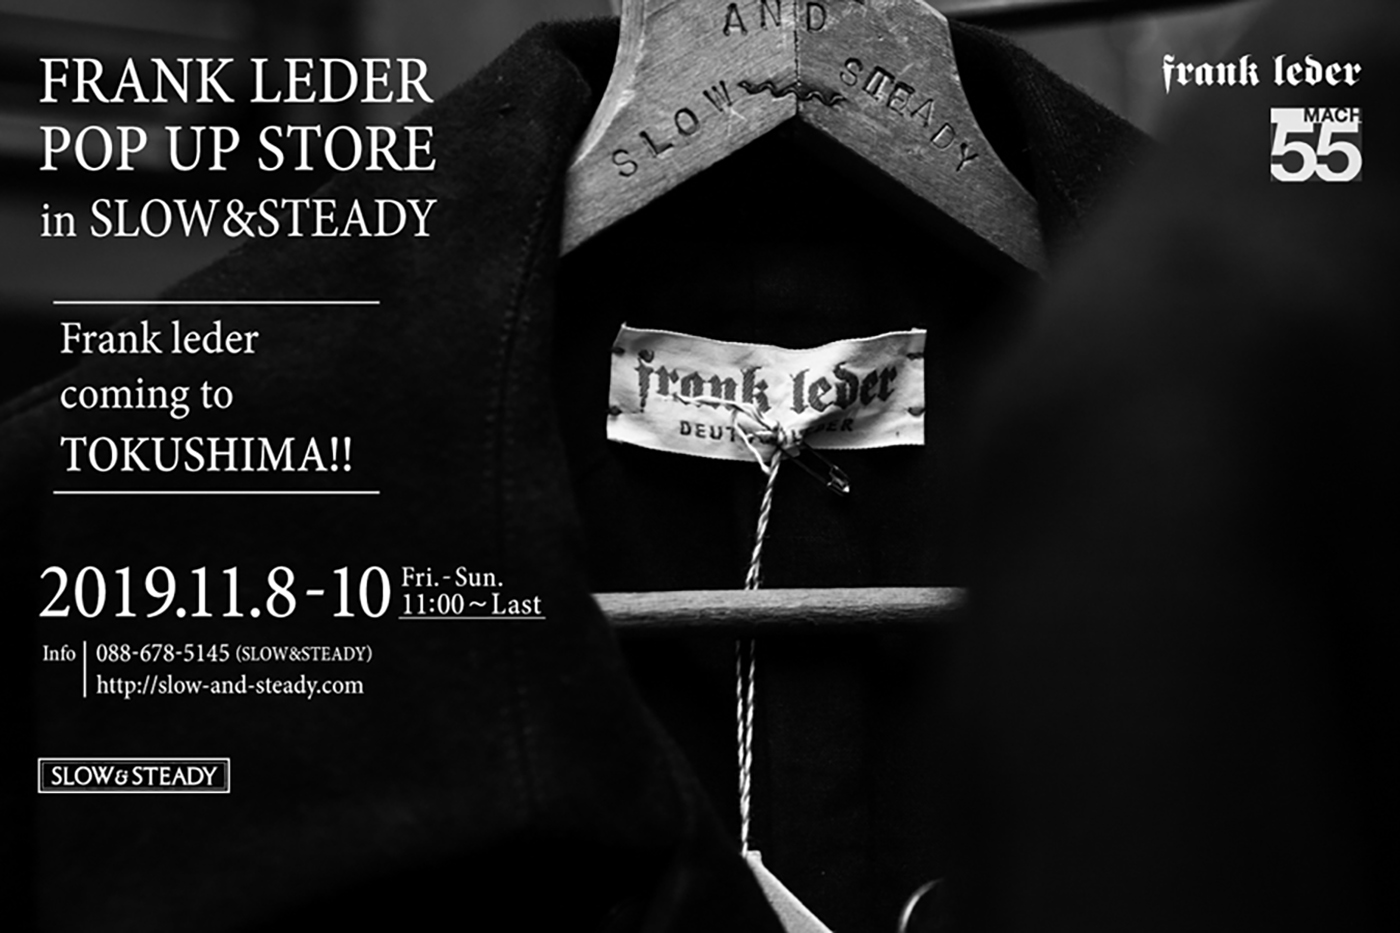 FRANK LEDER POP UP STORE in SLOW&STEADY